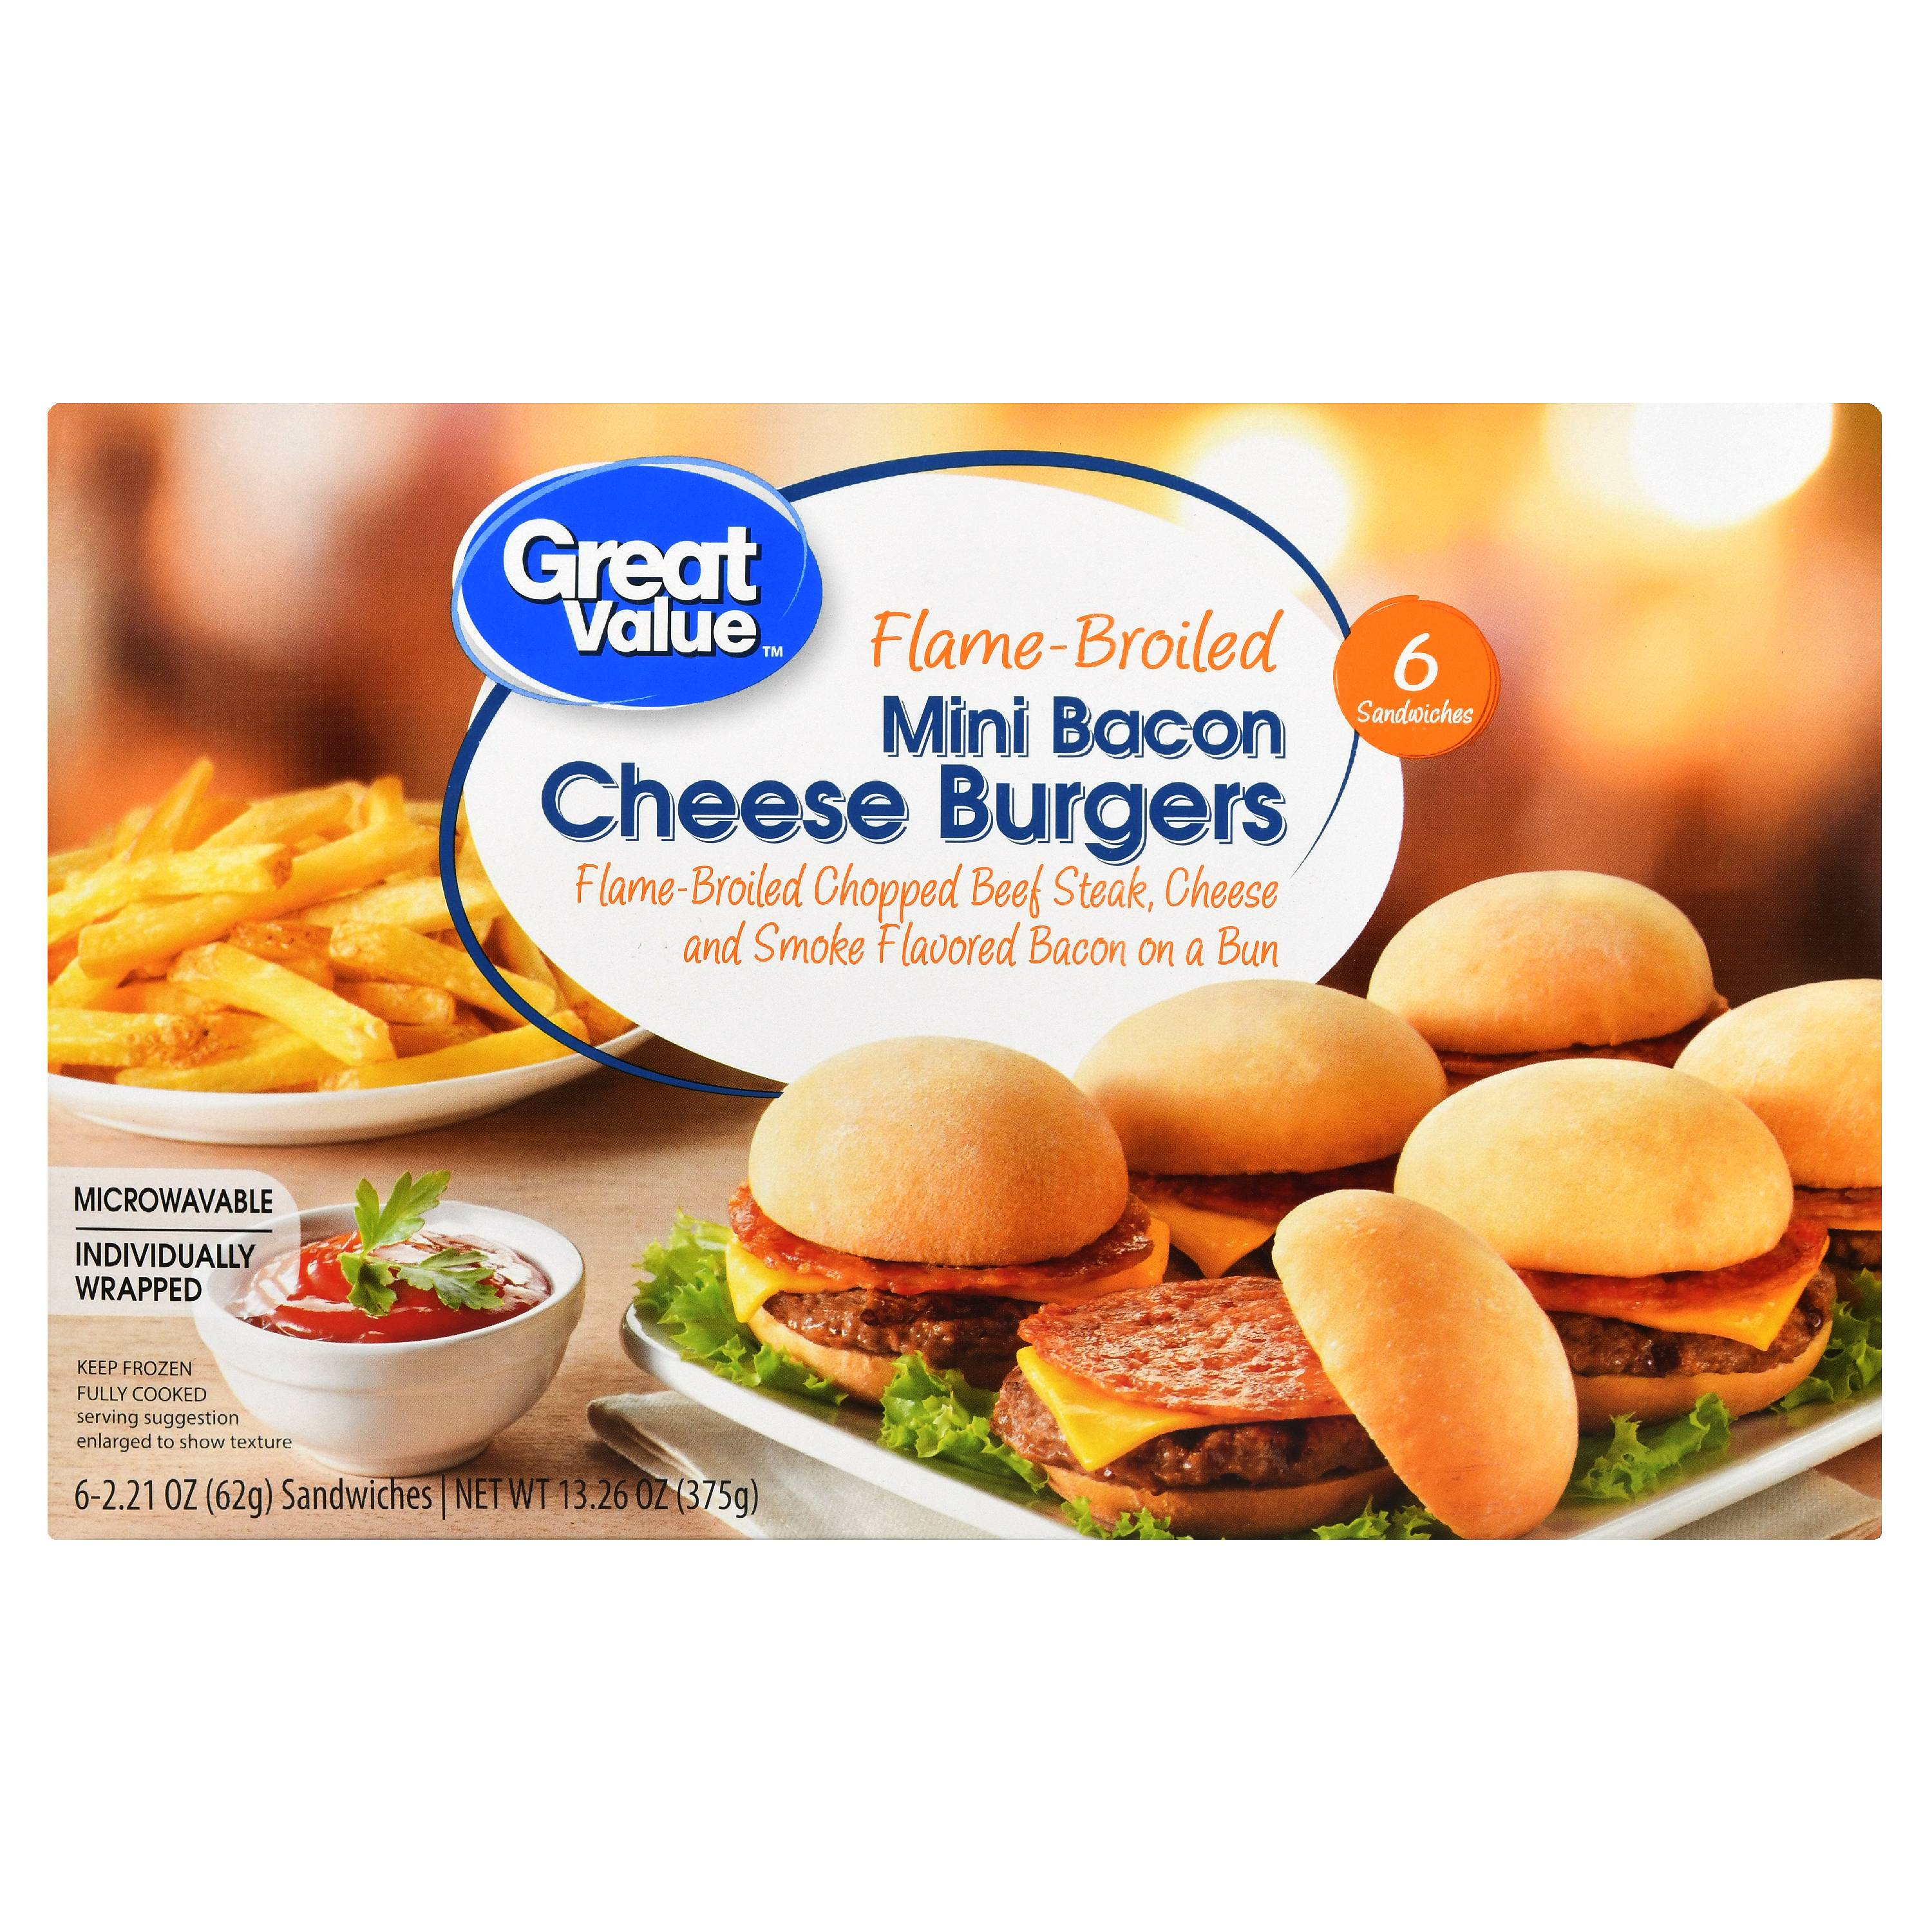 Great Value Frozen Mini Bacon Cheese Burgers, 13.26 oz, 6 Count